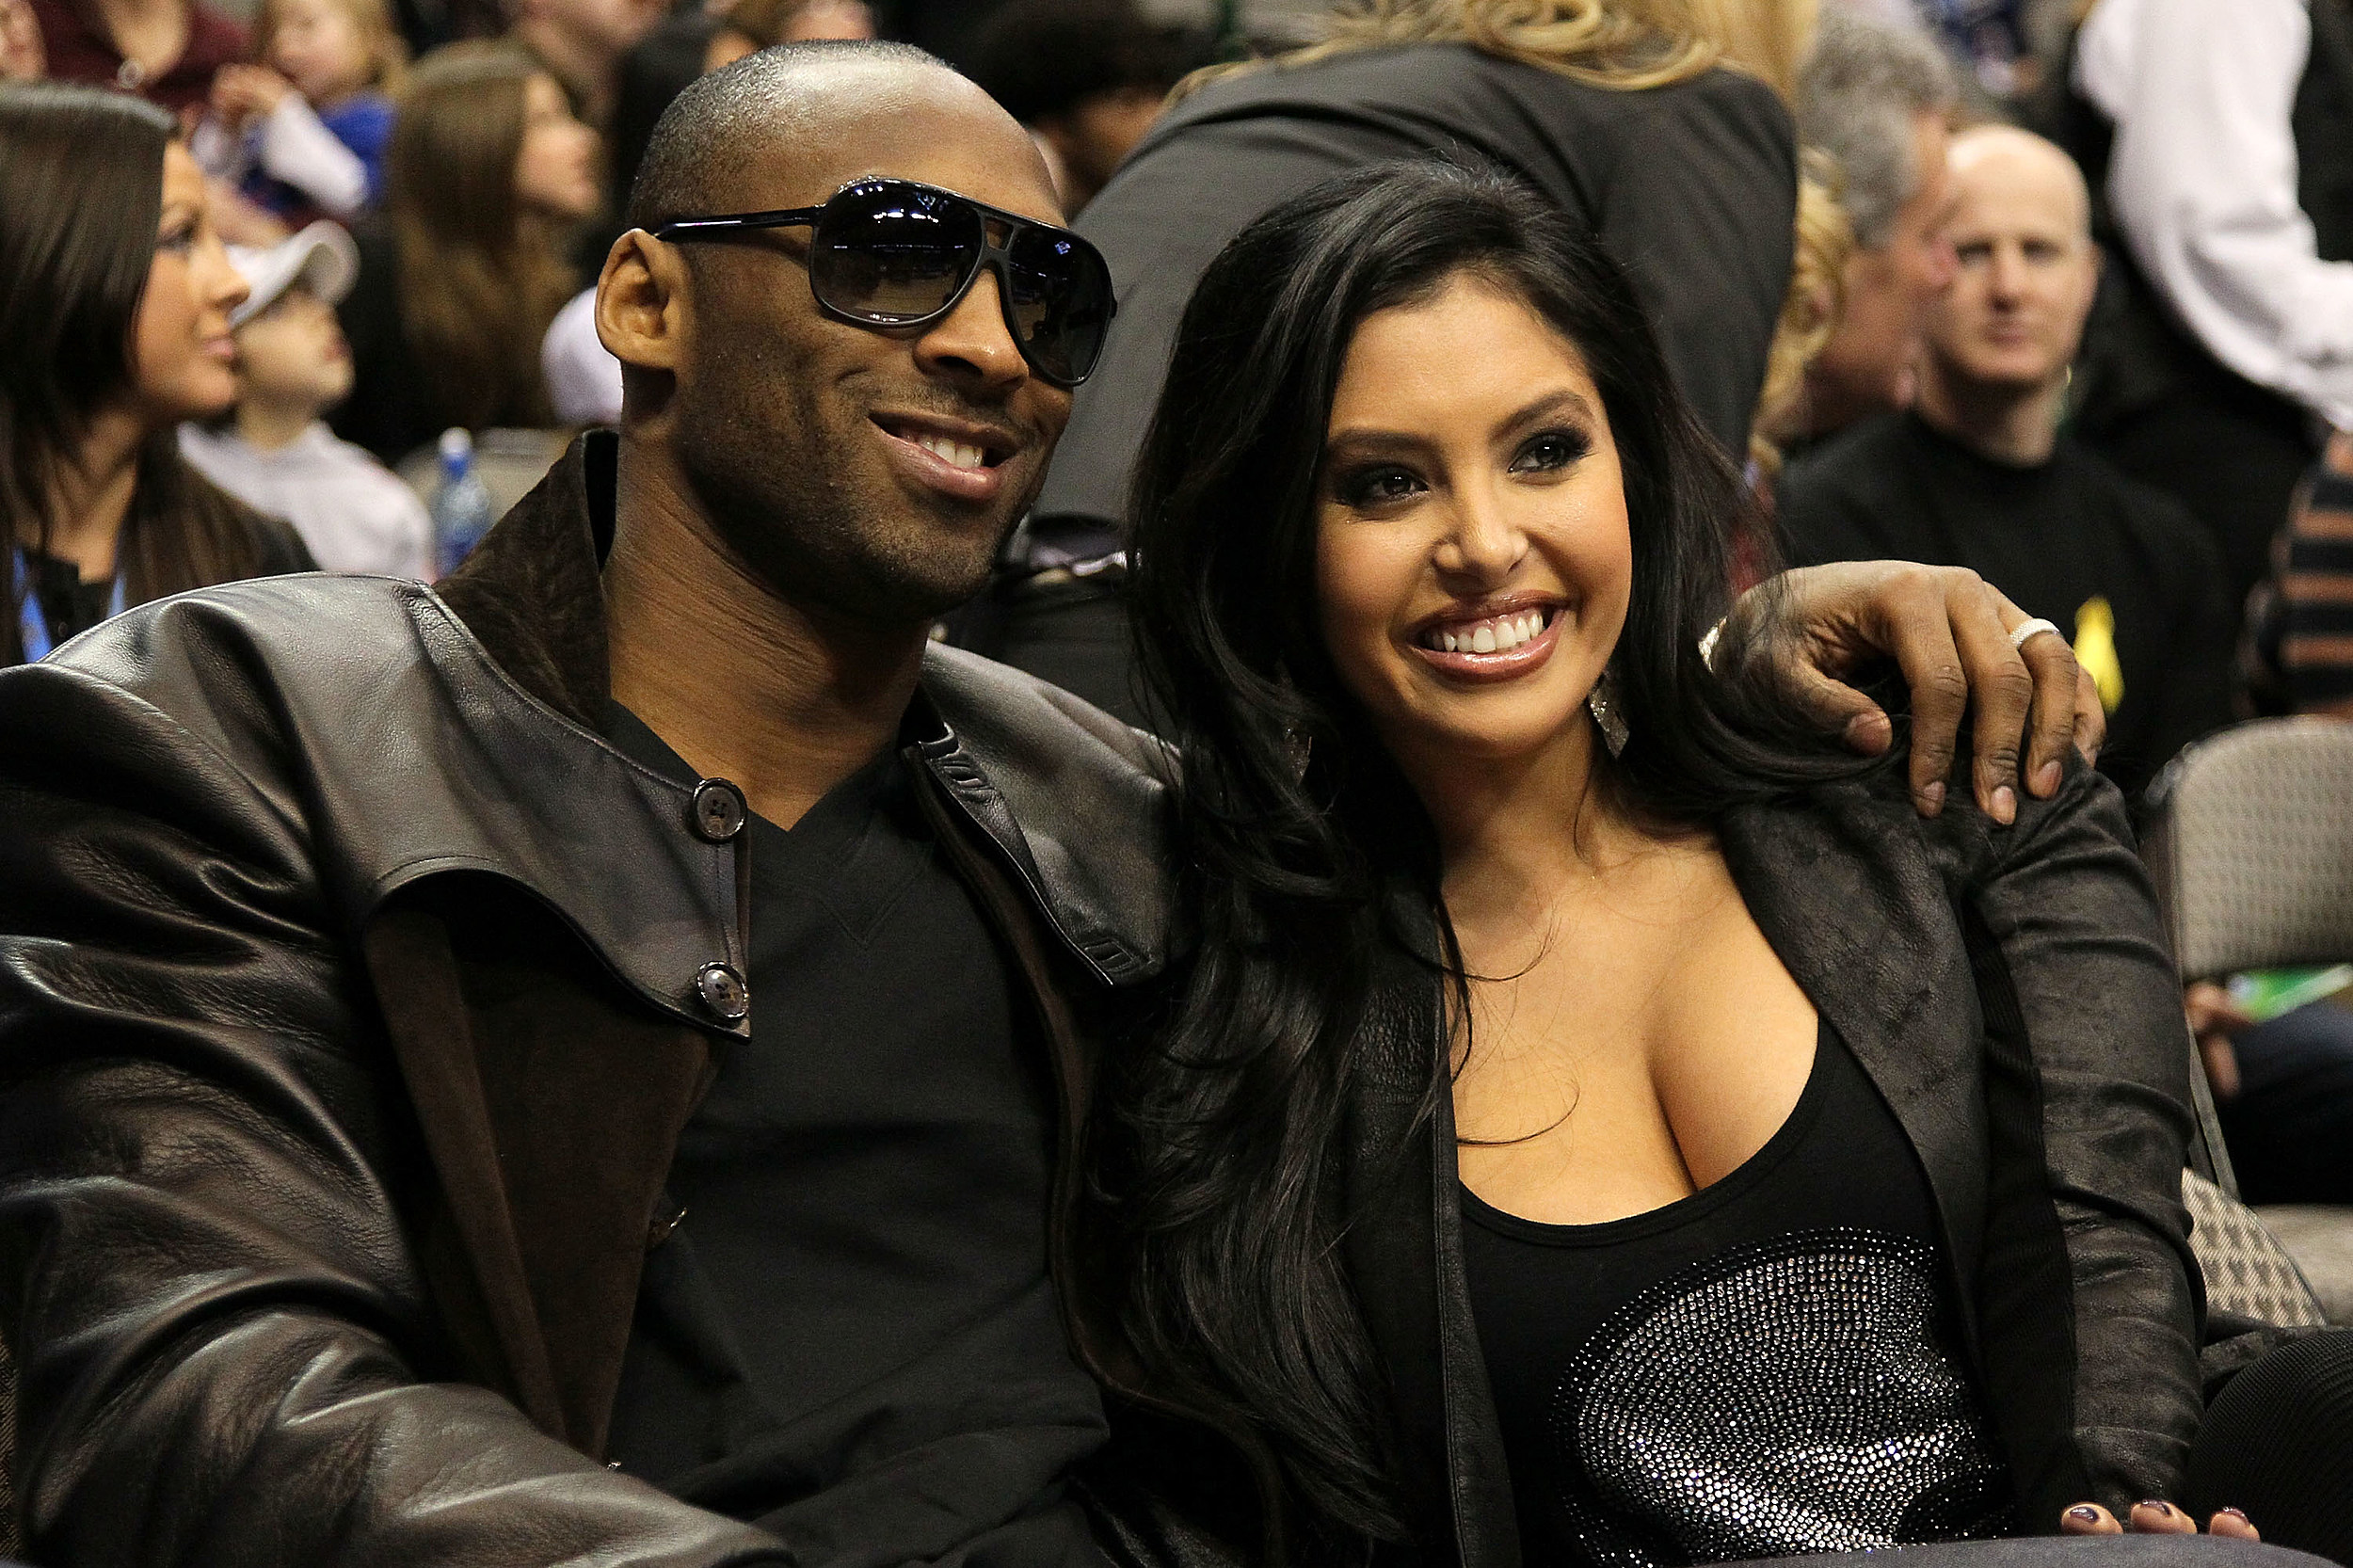 Kobe bryant may not be getting orced